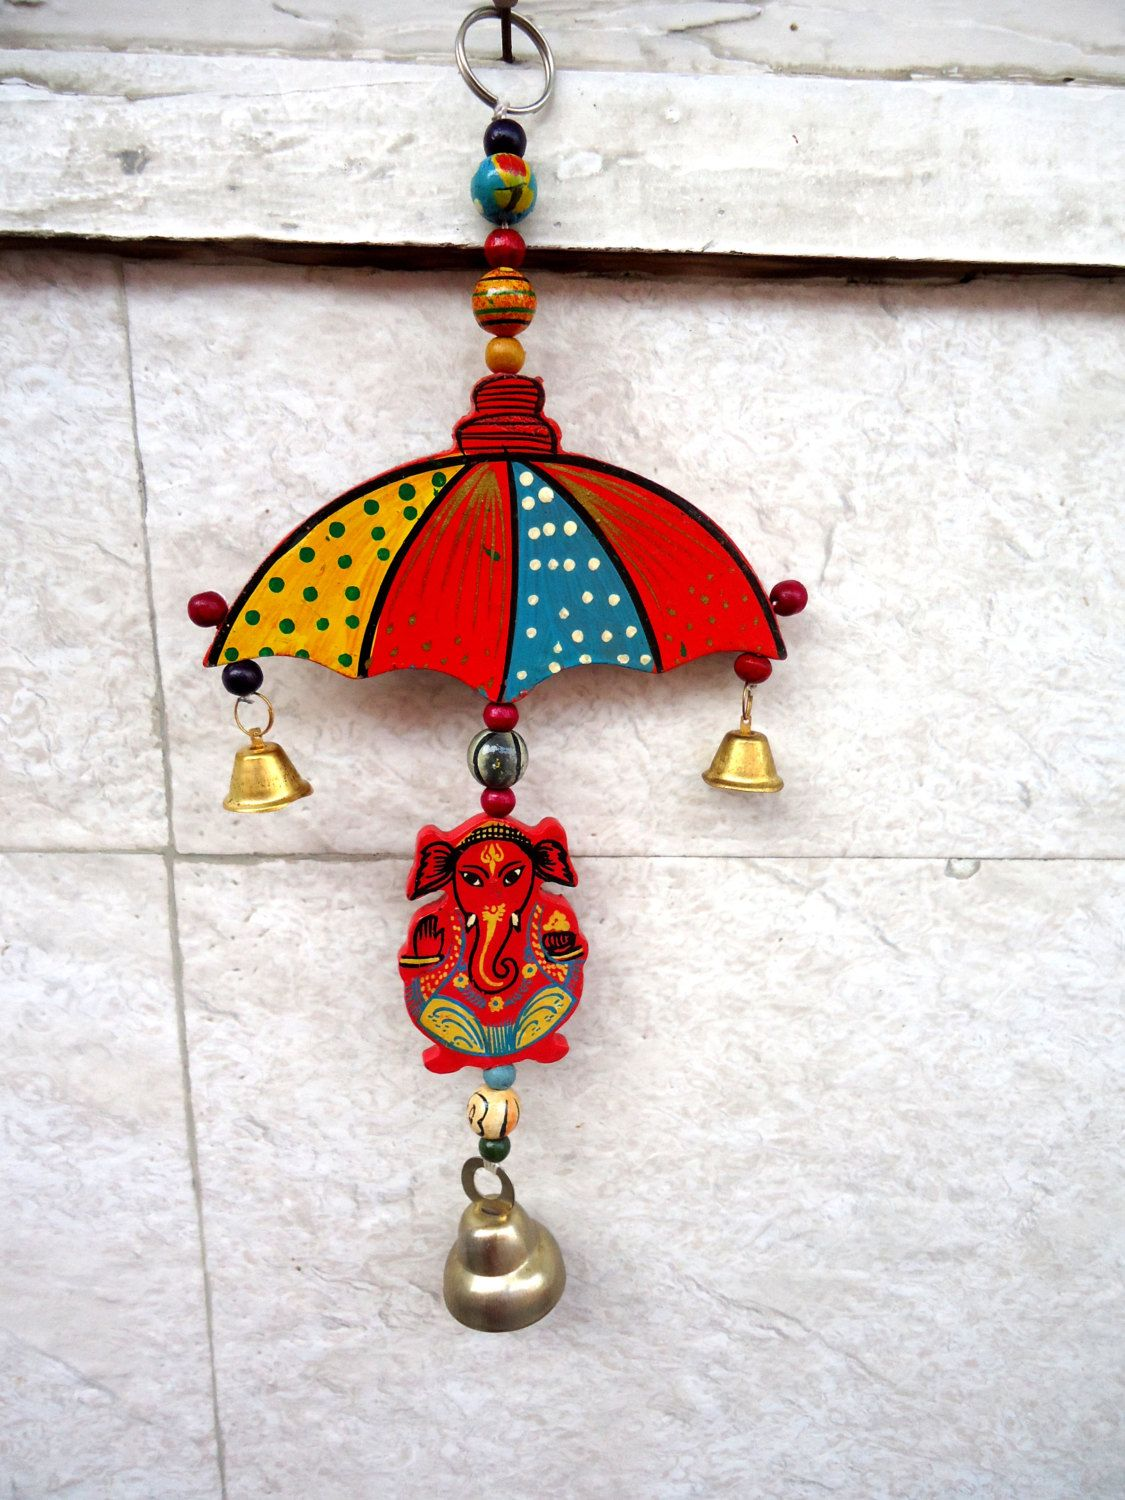 diwali home decor ganesha wall hanging bell hanging umbrella